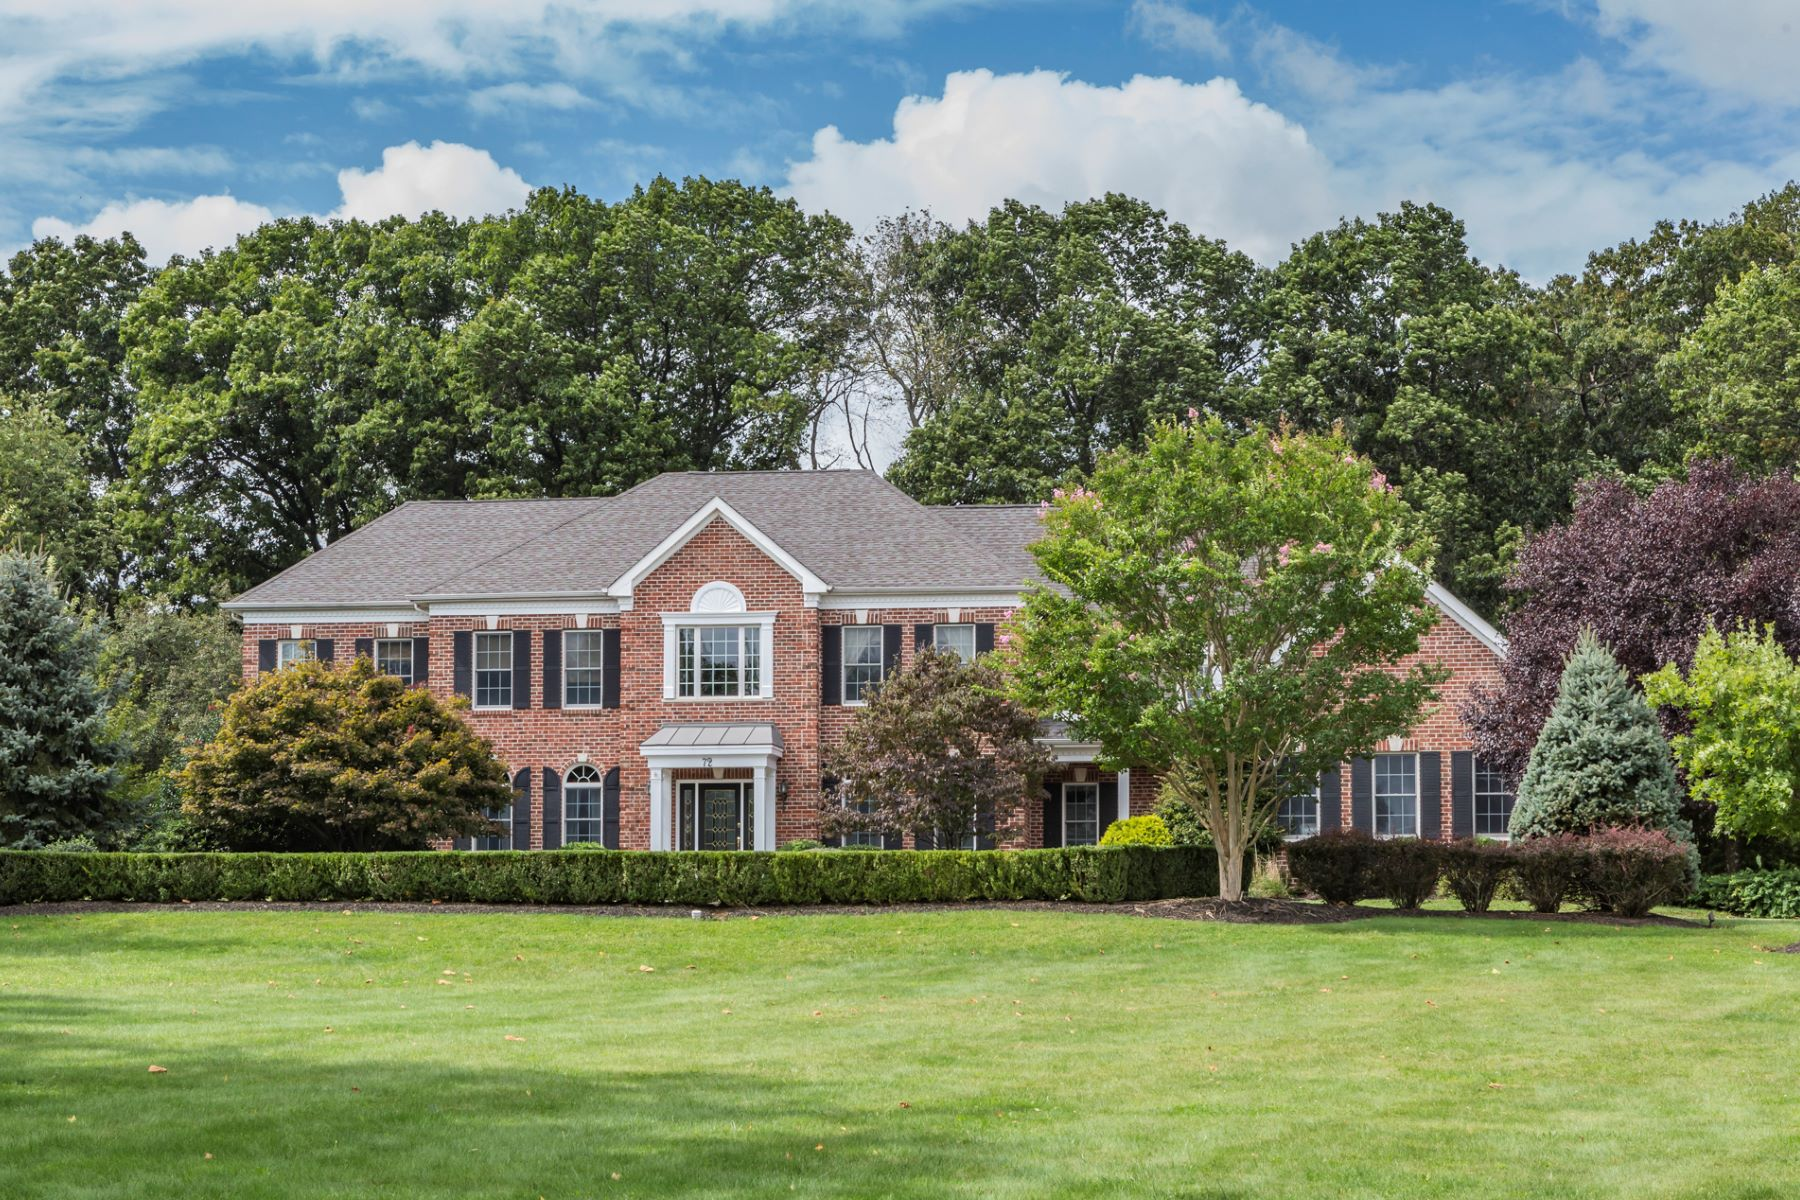 Maison unifamiliale pour l Vente à Distinguished Craftsmanship Is On Display - Montgomery Township 72 Concord Lane, Skillman, New Jersey 08558 États-UnisDans/Autour: Montgomery Township